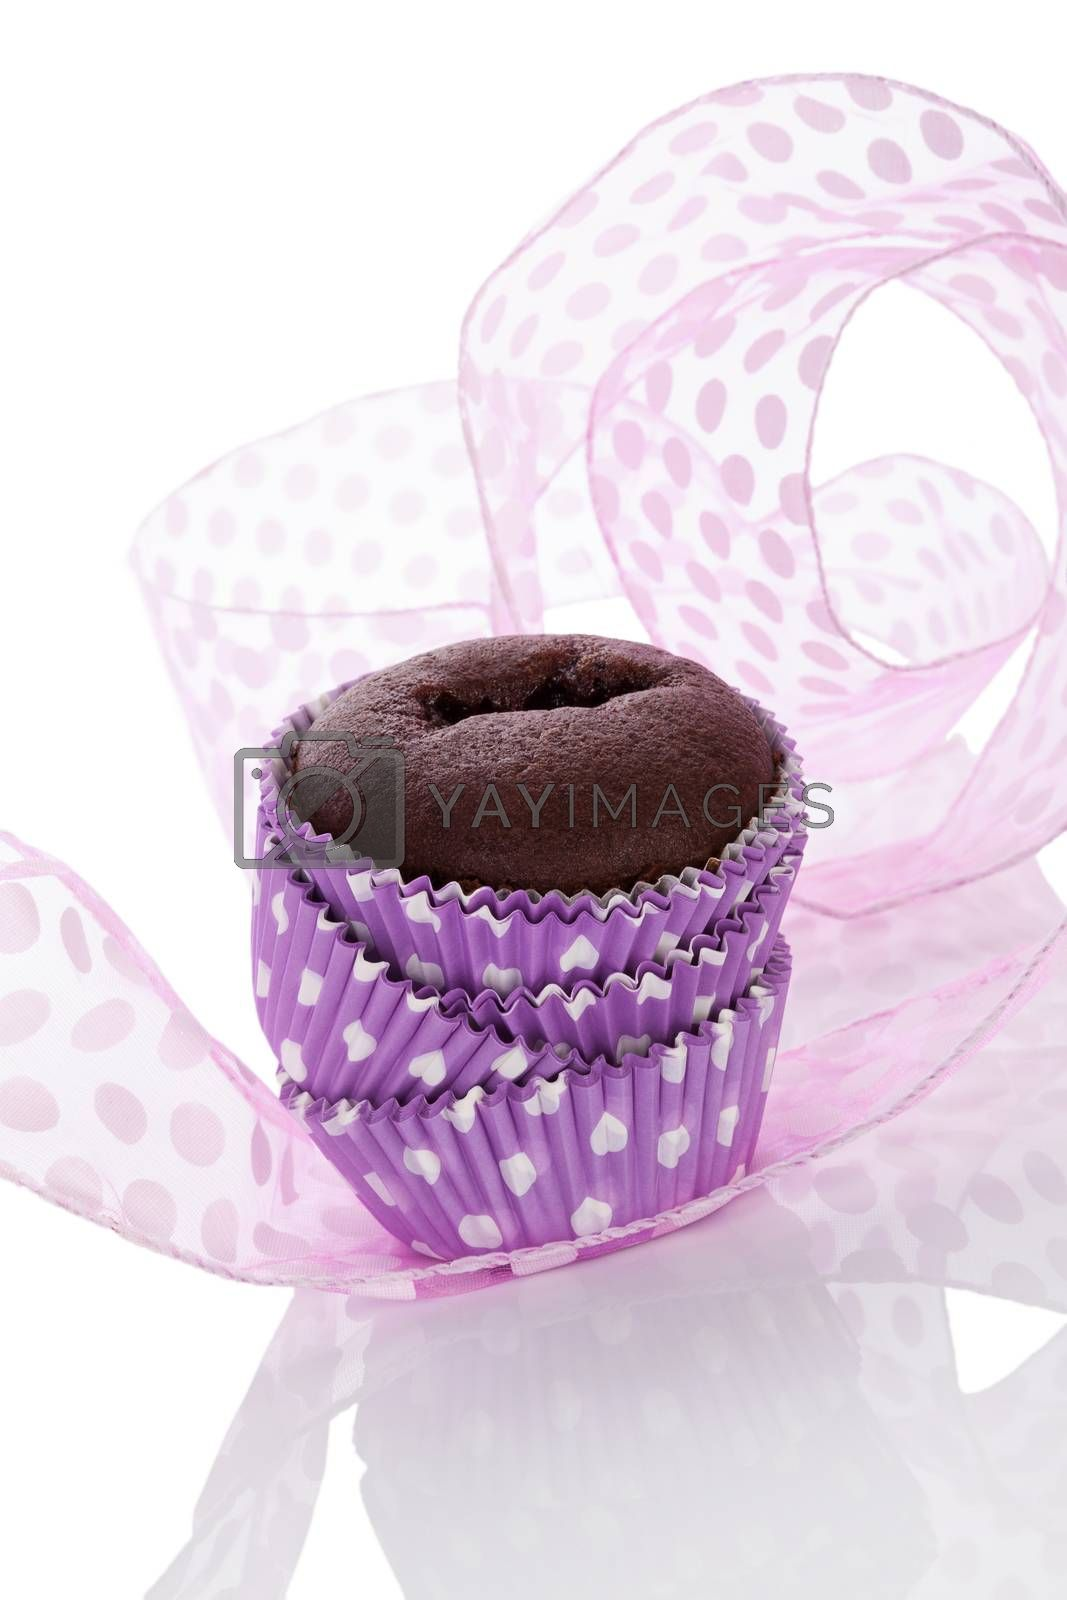 Chocolate cupcake in purple and white. Contemporary modern baking.